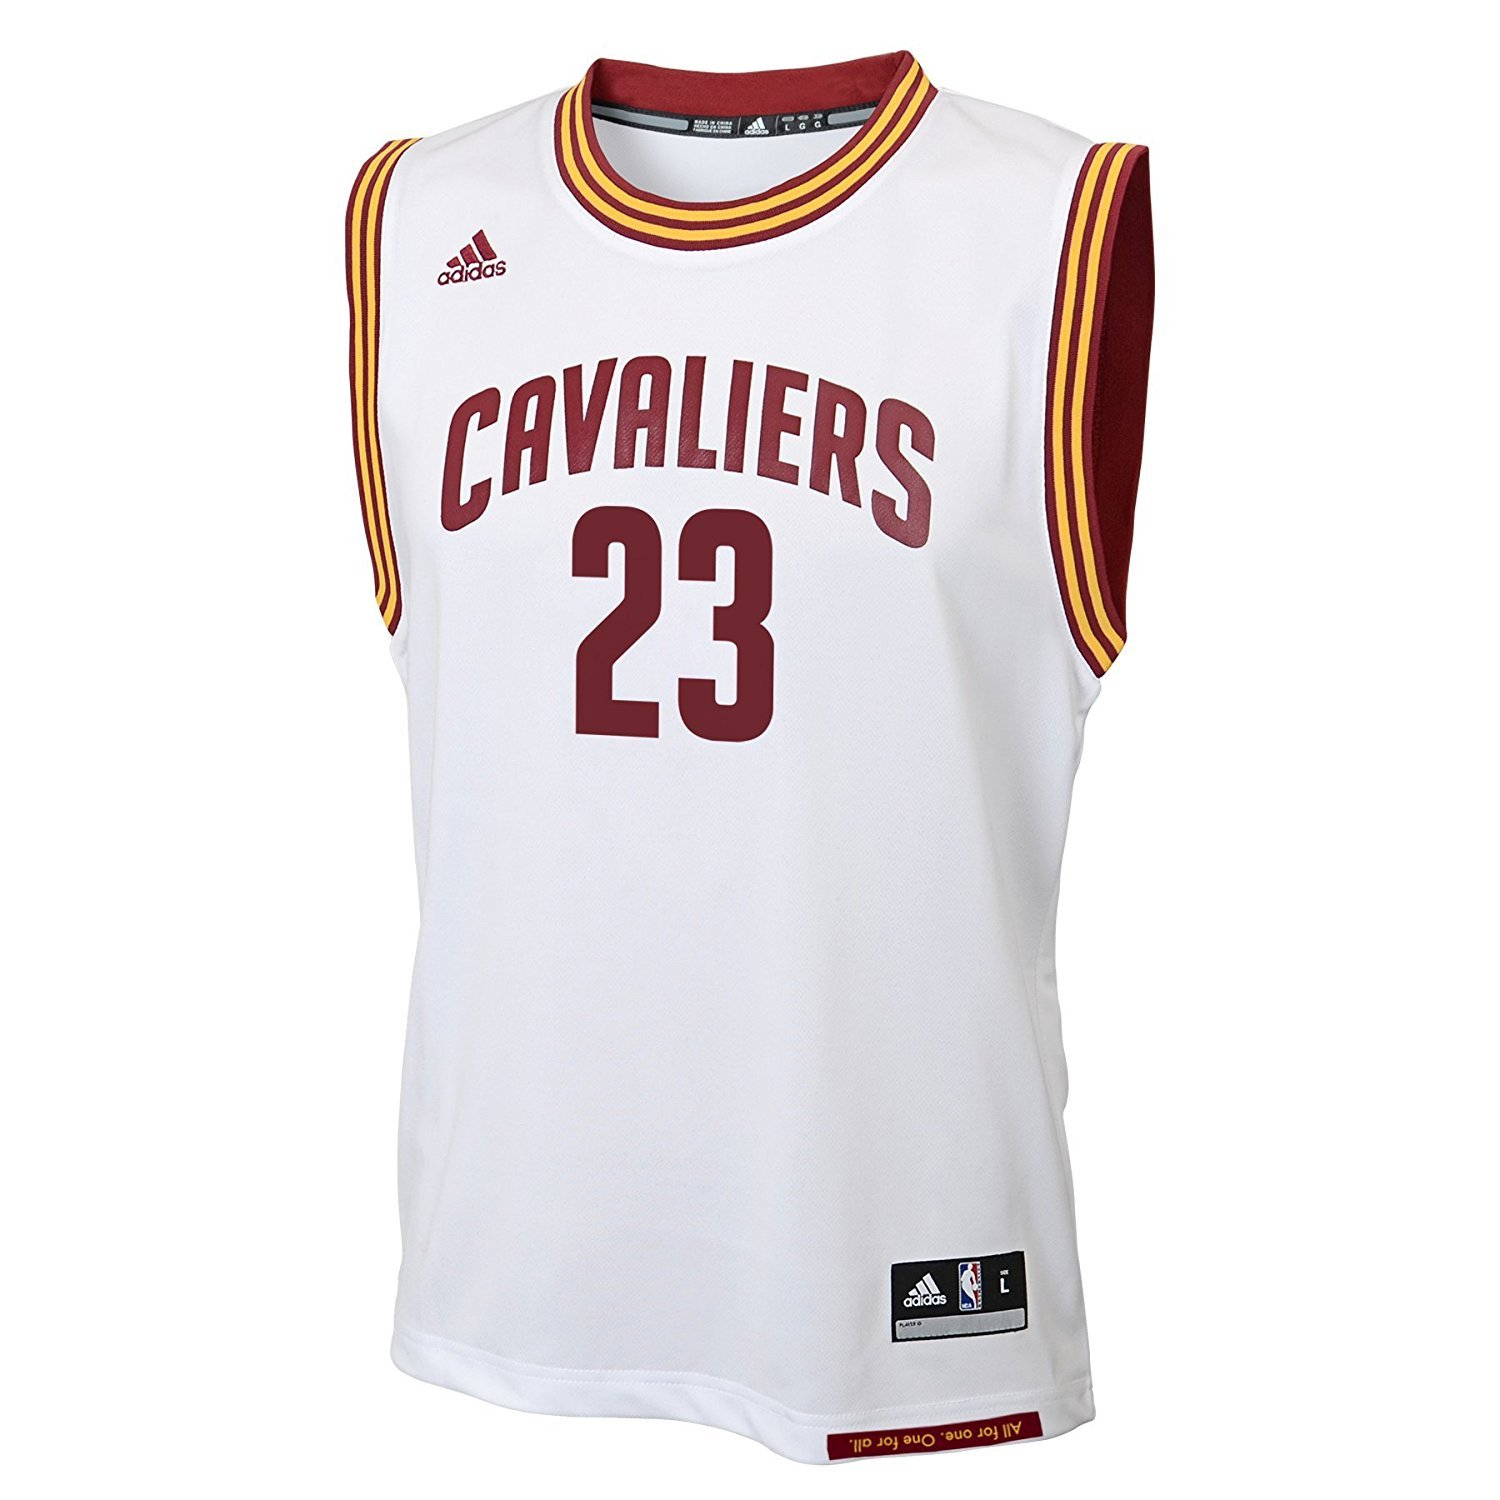 LeBron James Cleveland Cavaliers NBA Adidas Youth White Home Replica Jersey (Size Medium 10-12)